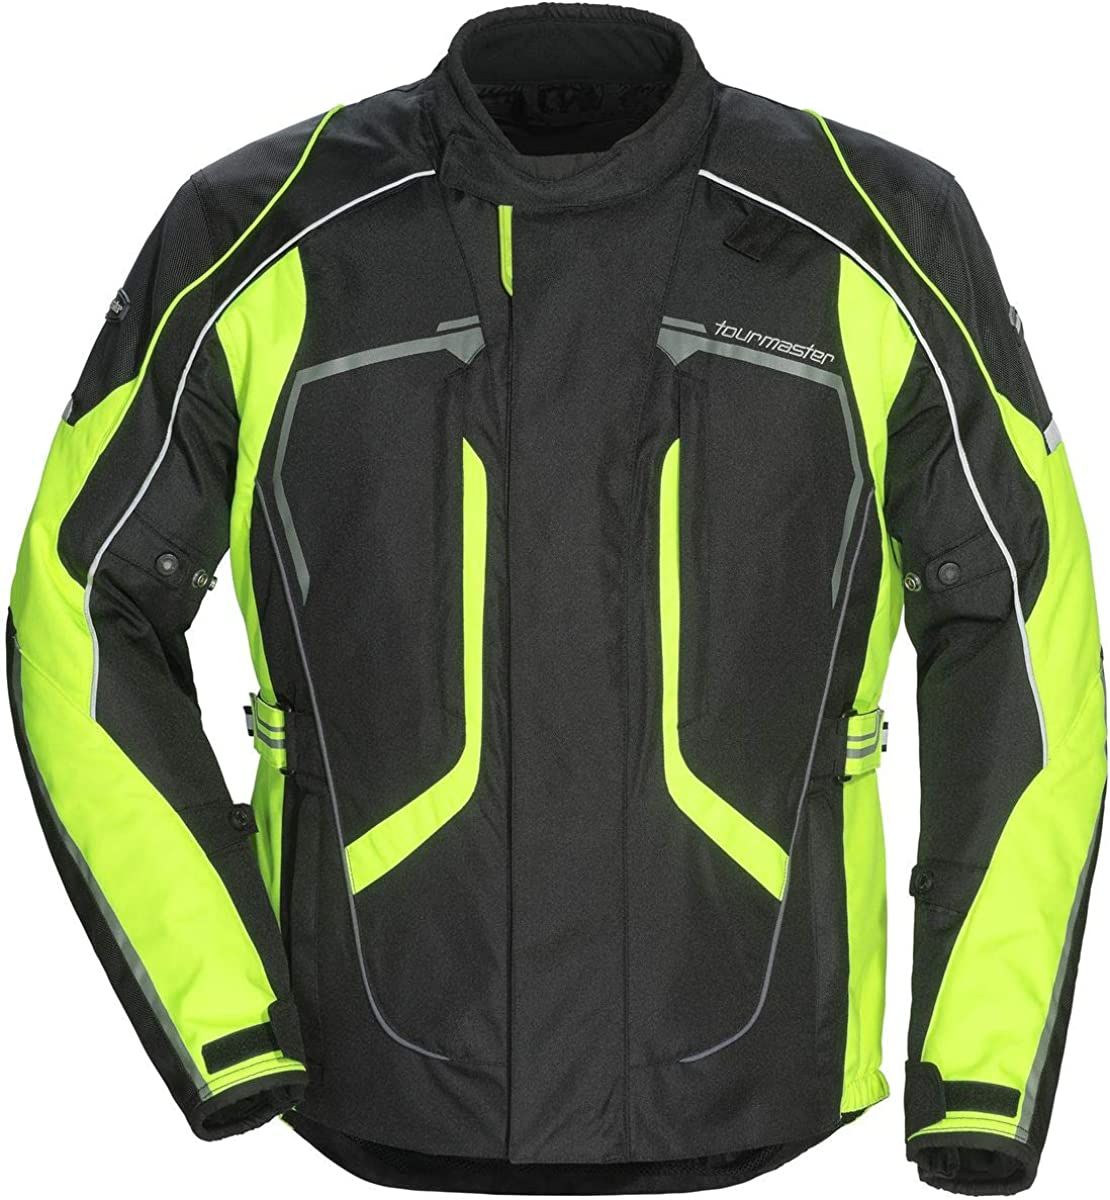 Tourmaster Advanced Men's Motorcycle Max 79% OFF Textile Jacket Spring new work one after another